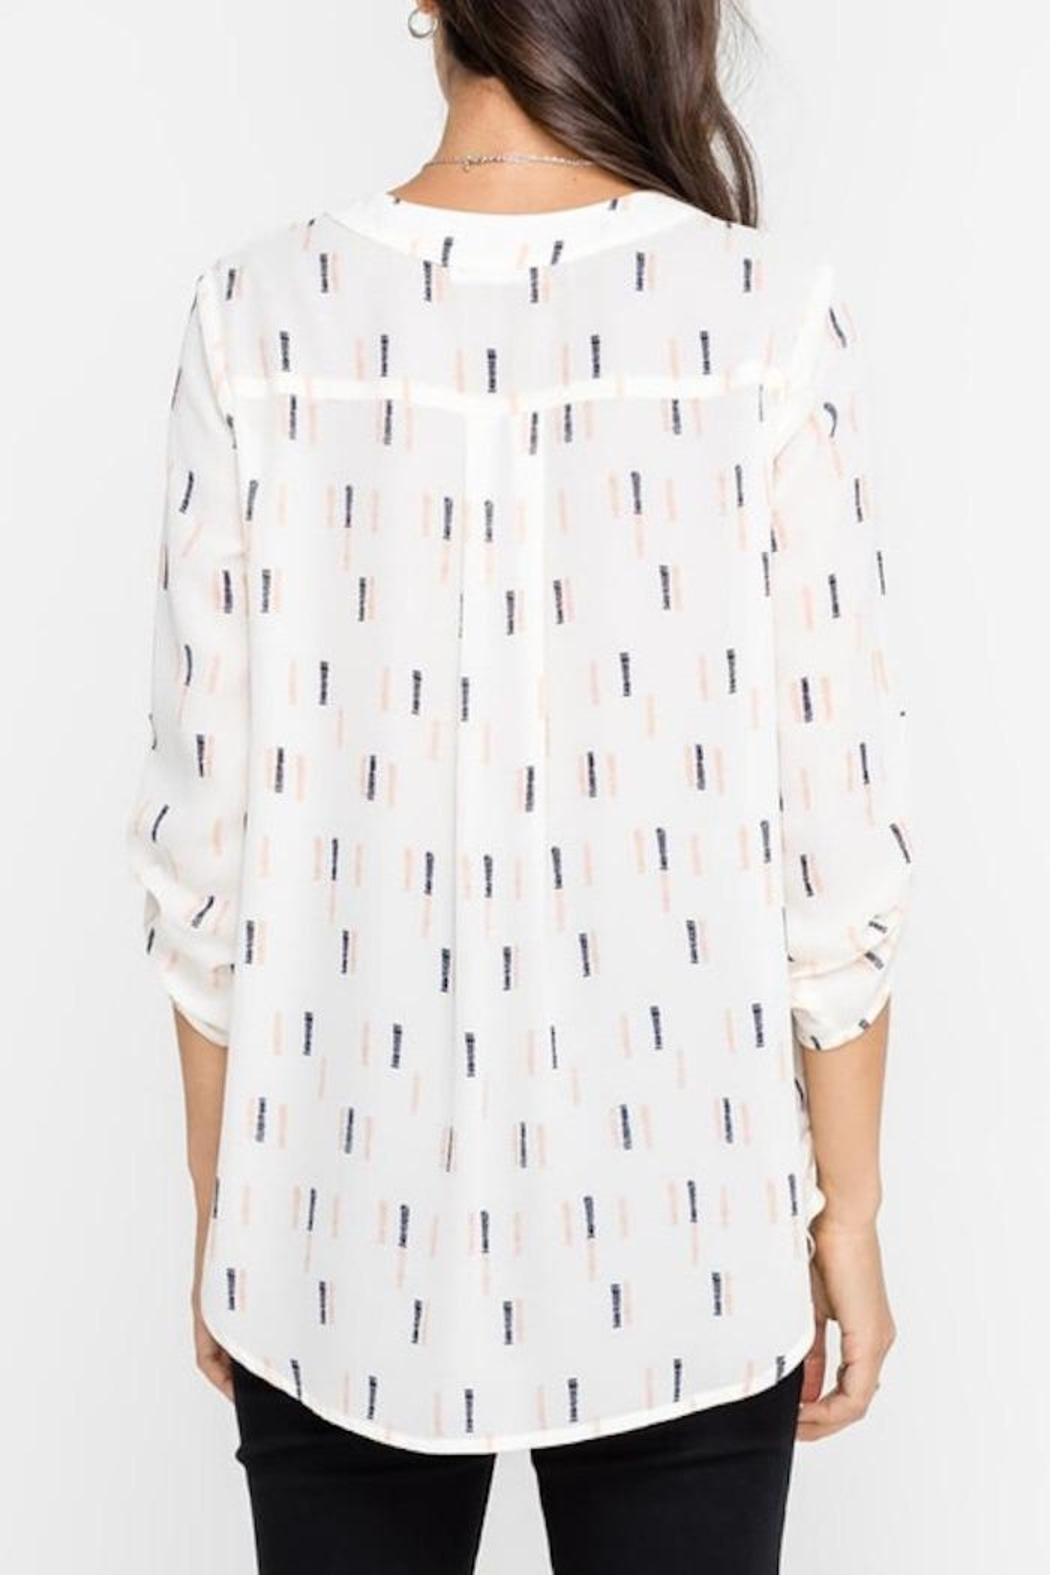 Apricot Lane Business Casual Top - Side Cropped Image